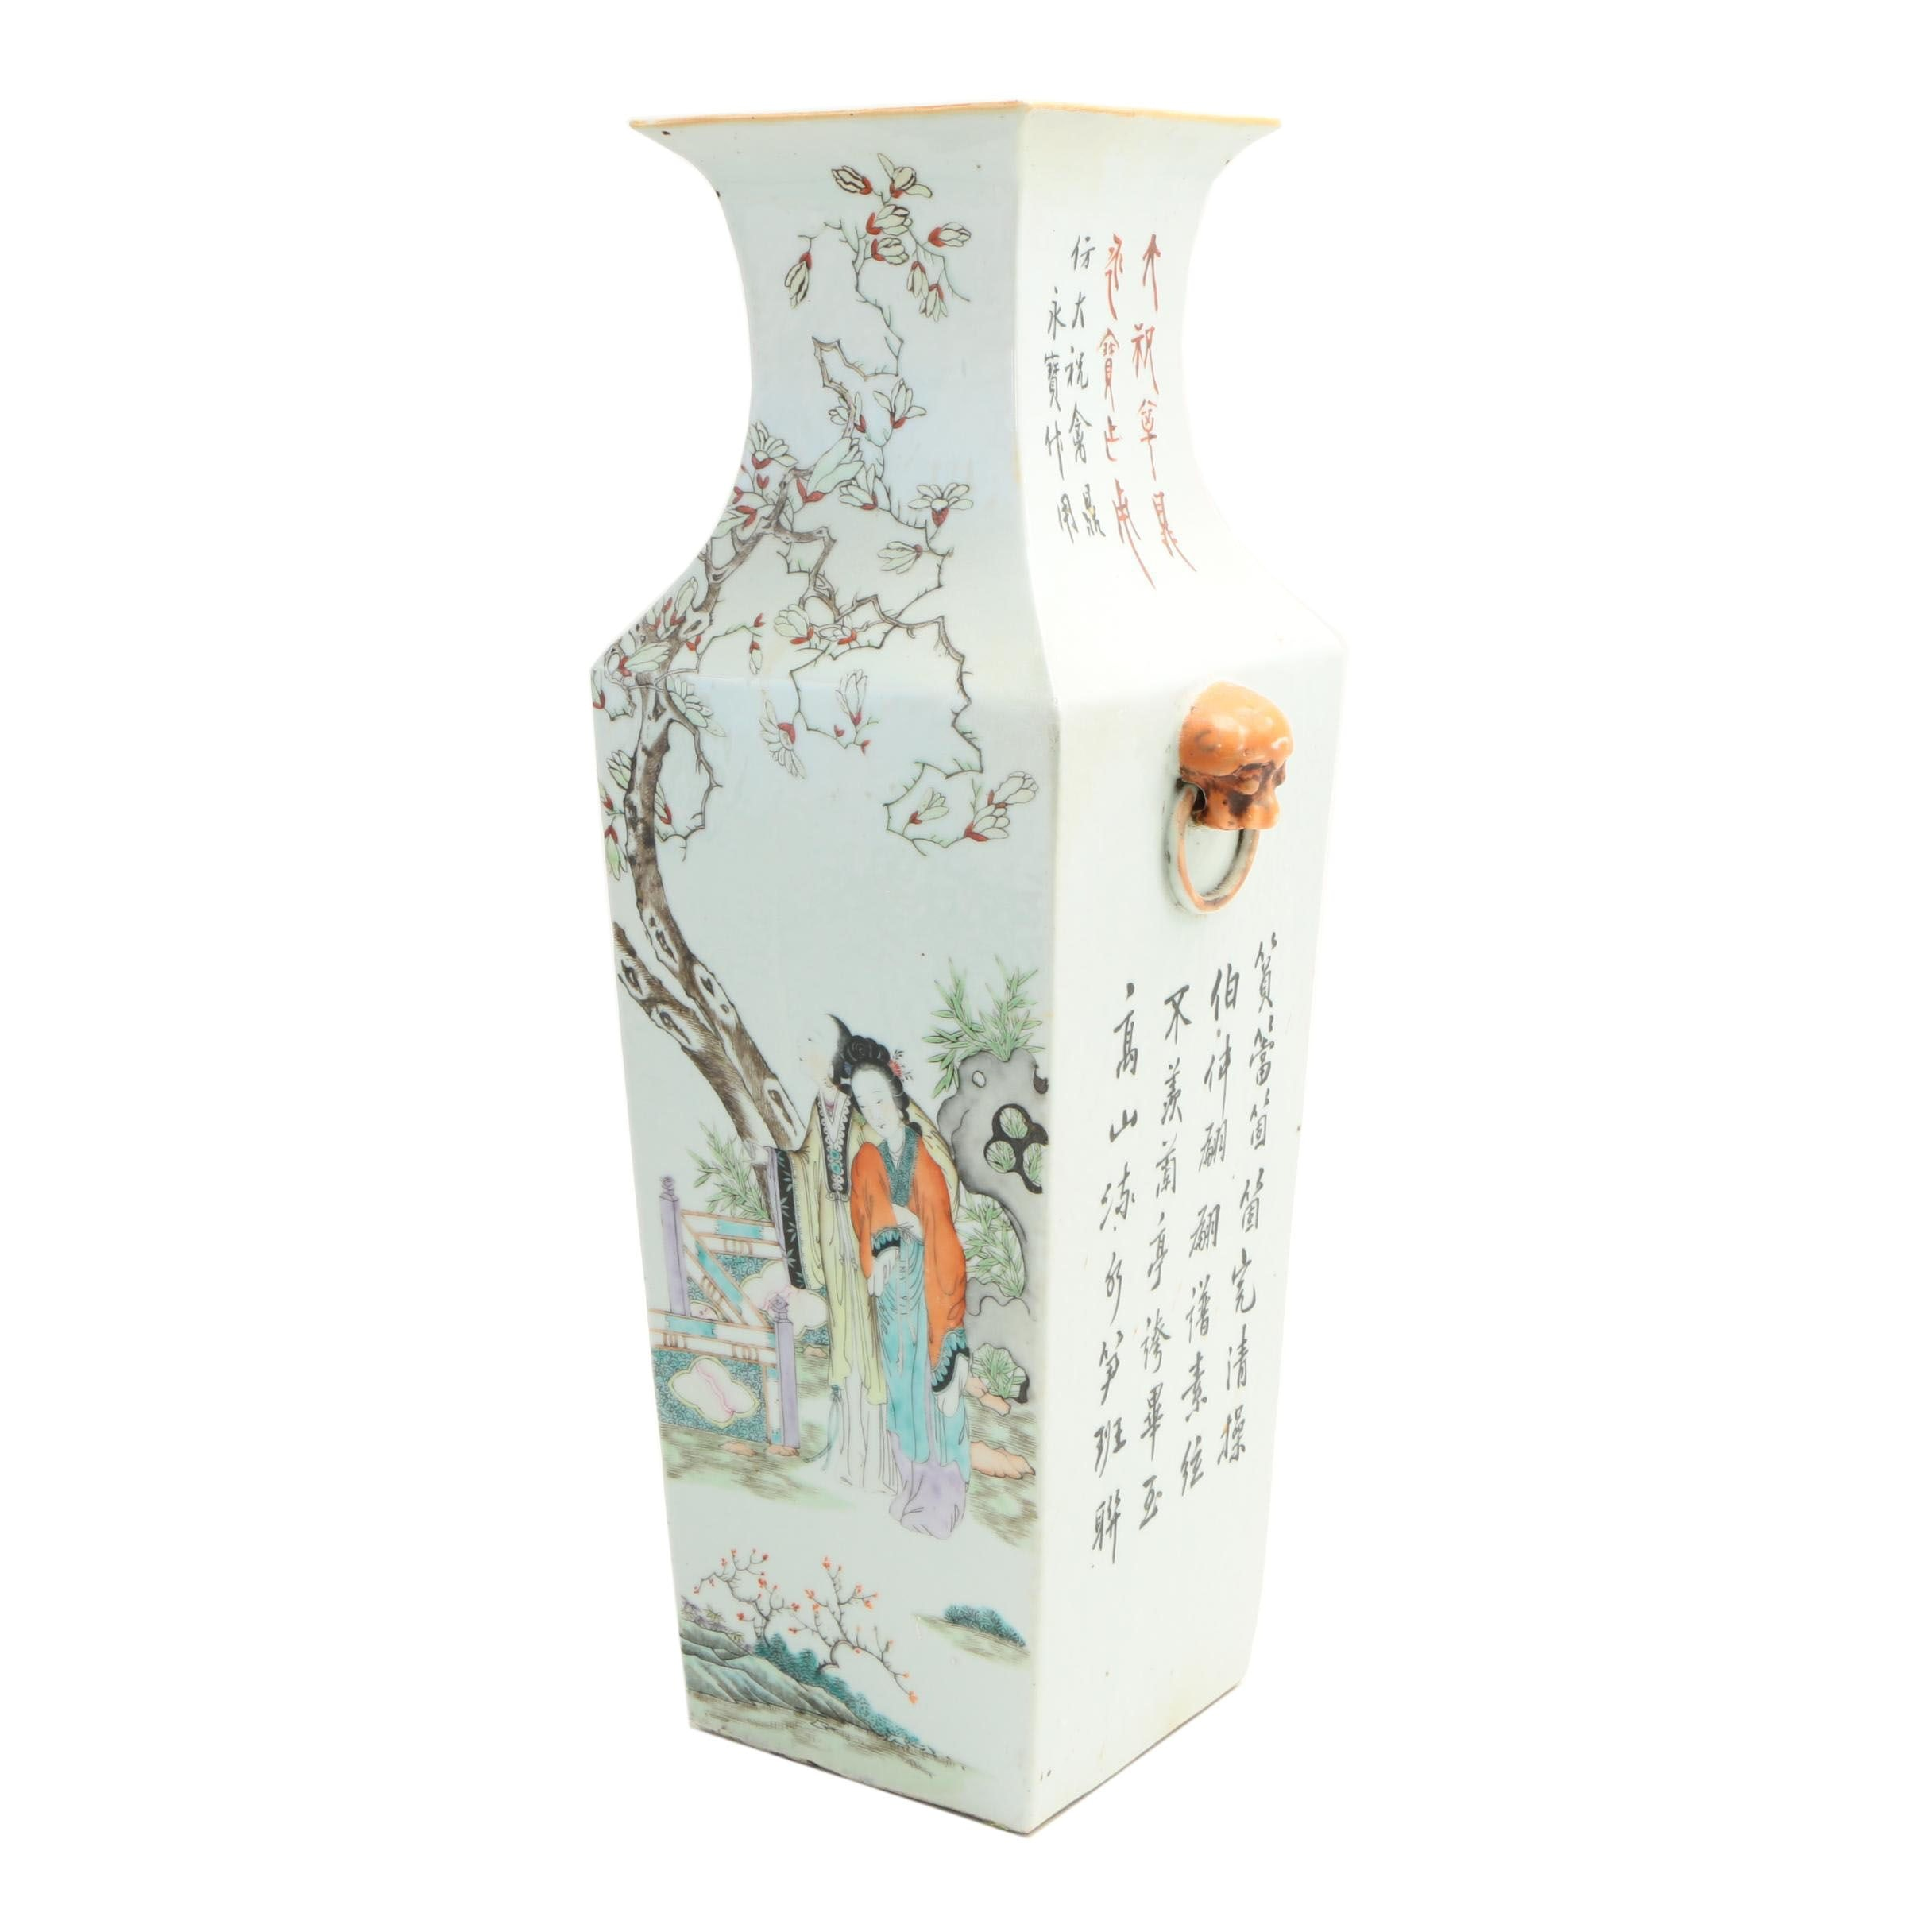 Chinese Hand-Painted Porcelain Vase, Republic Period